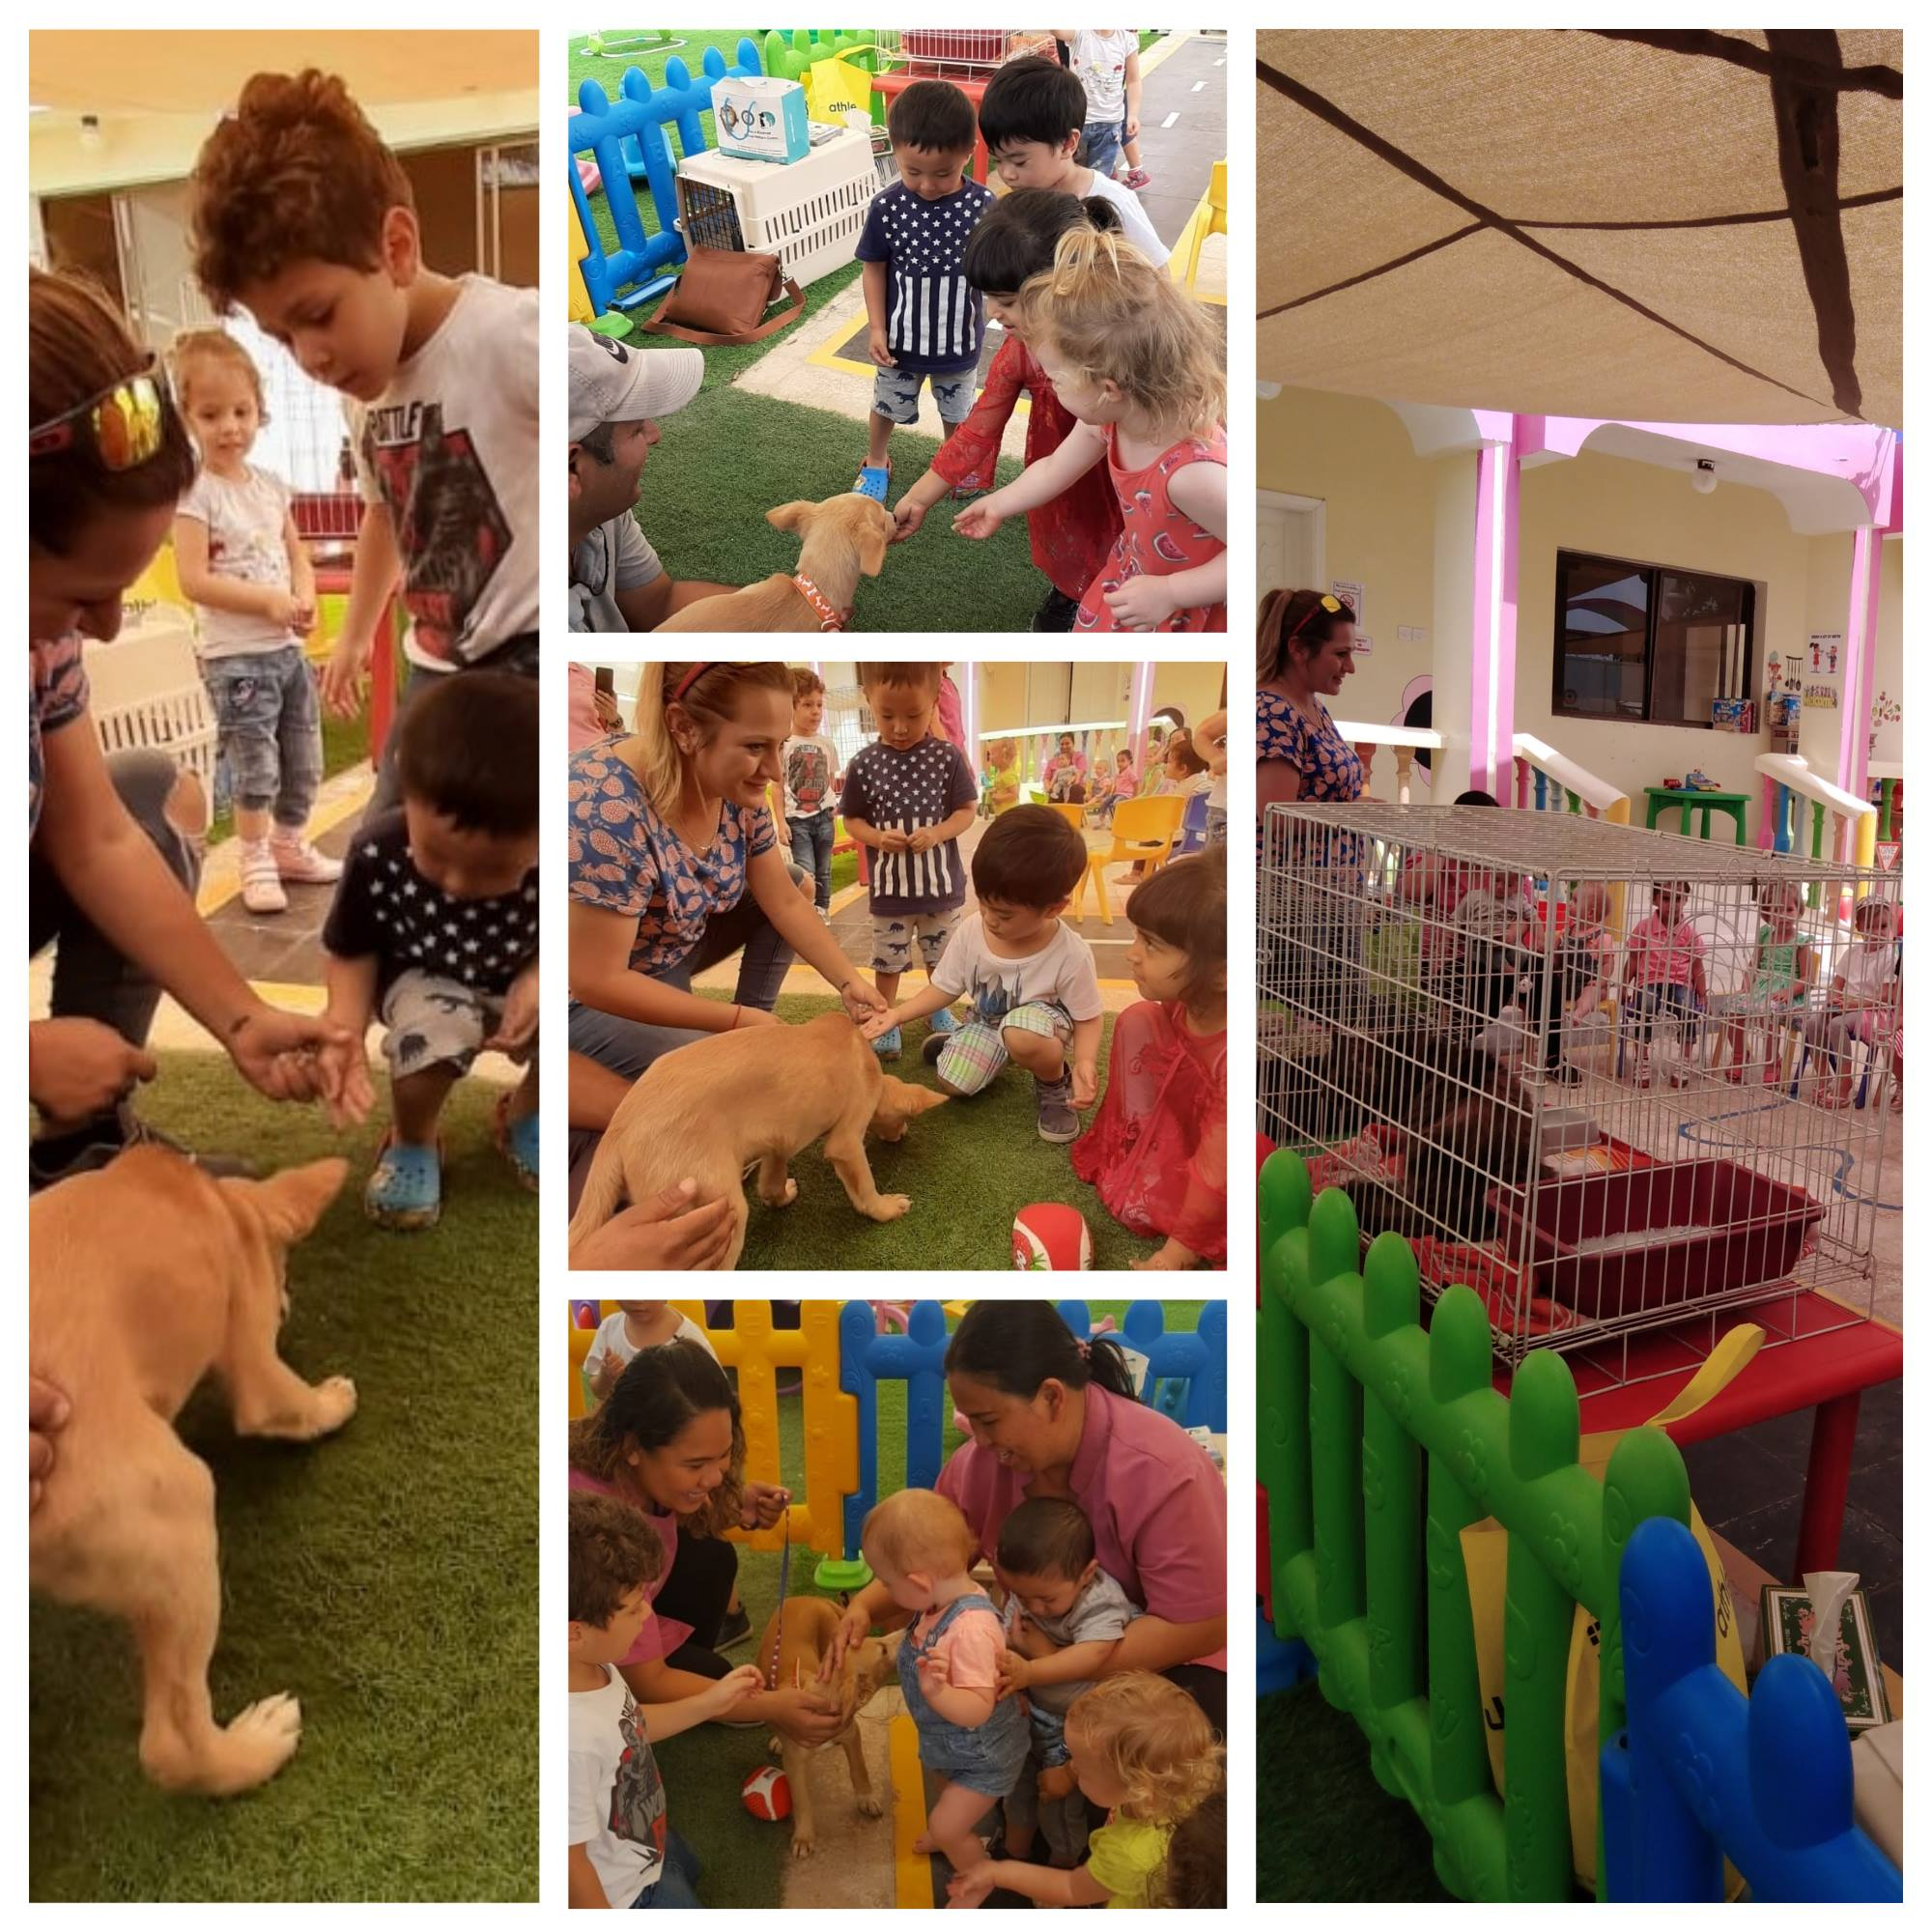 RAK Animal Welfare visits our Khuzam Branch